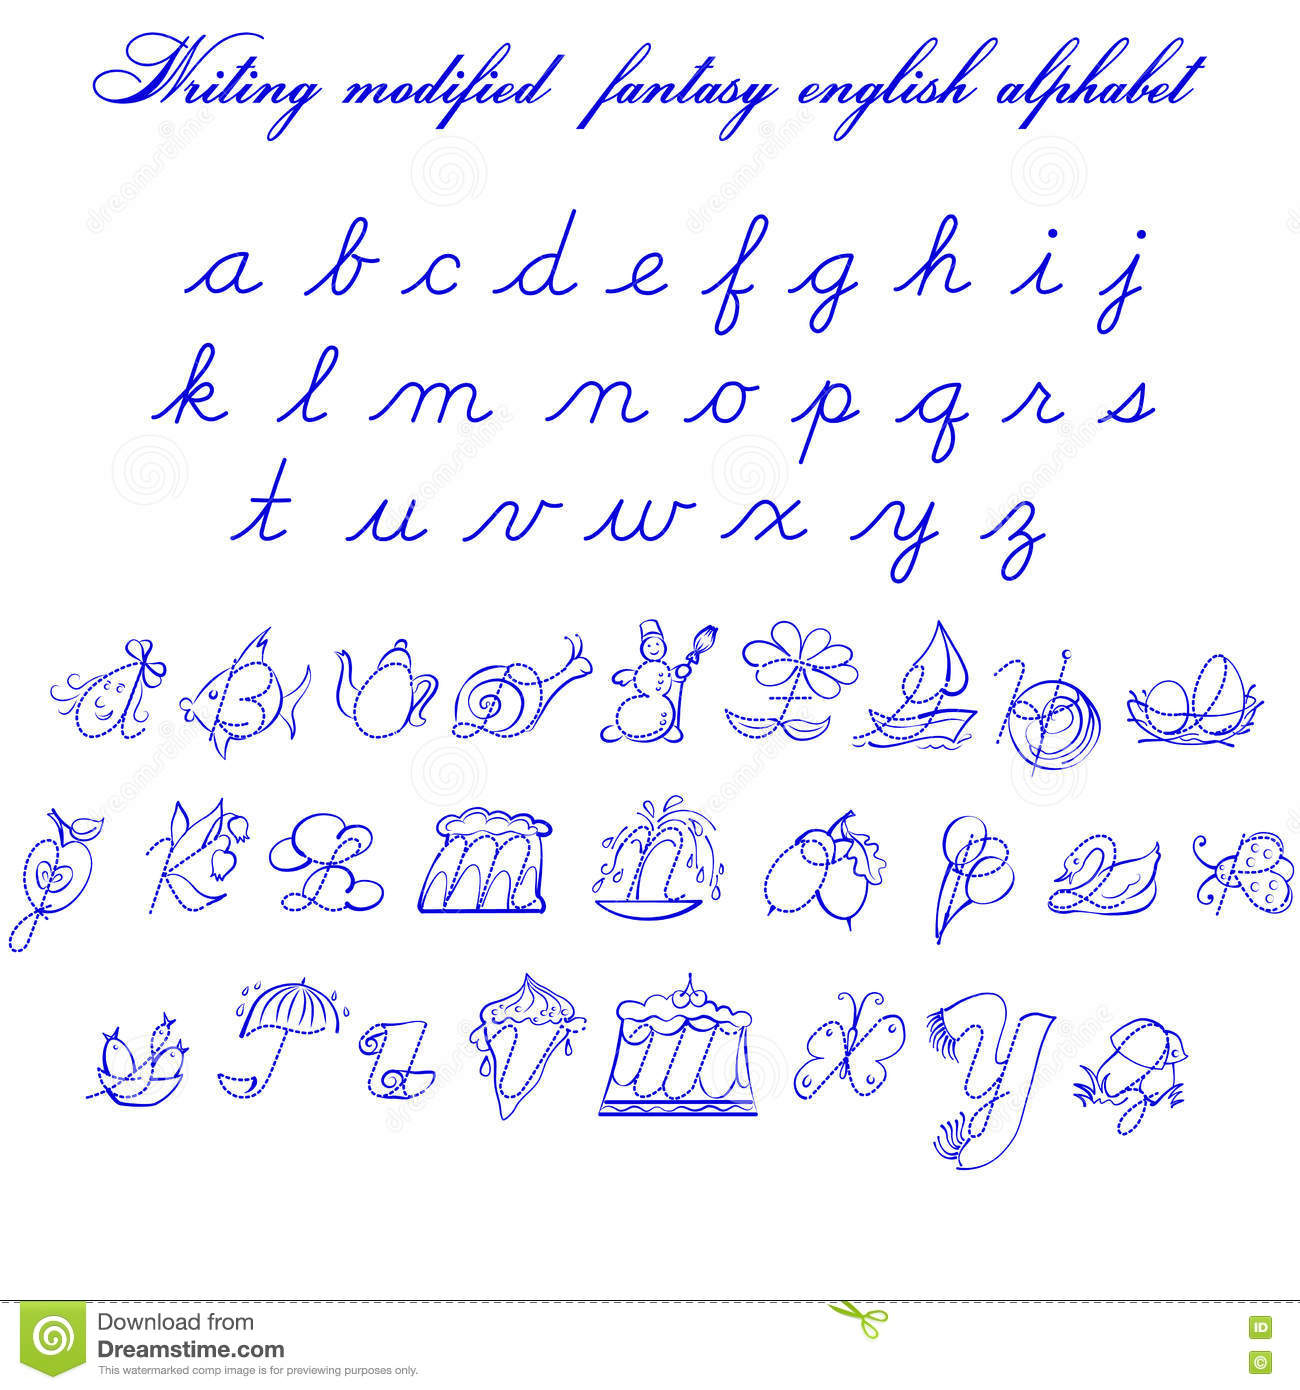 Writing Modifyed Fantasy English Alphabet Illustration